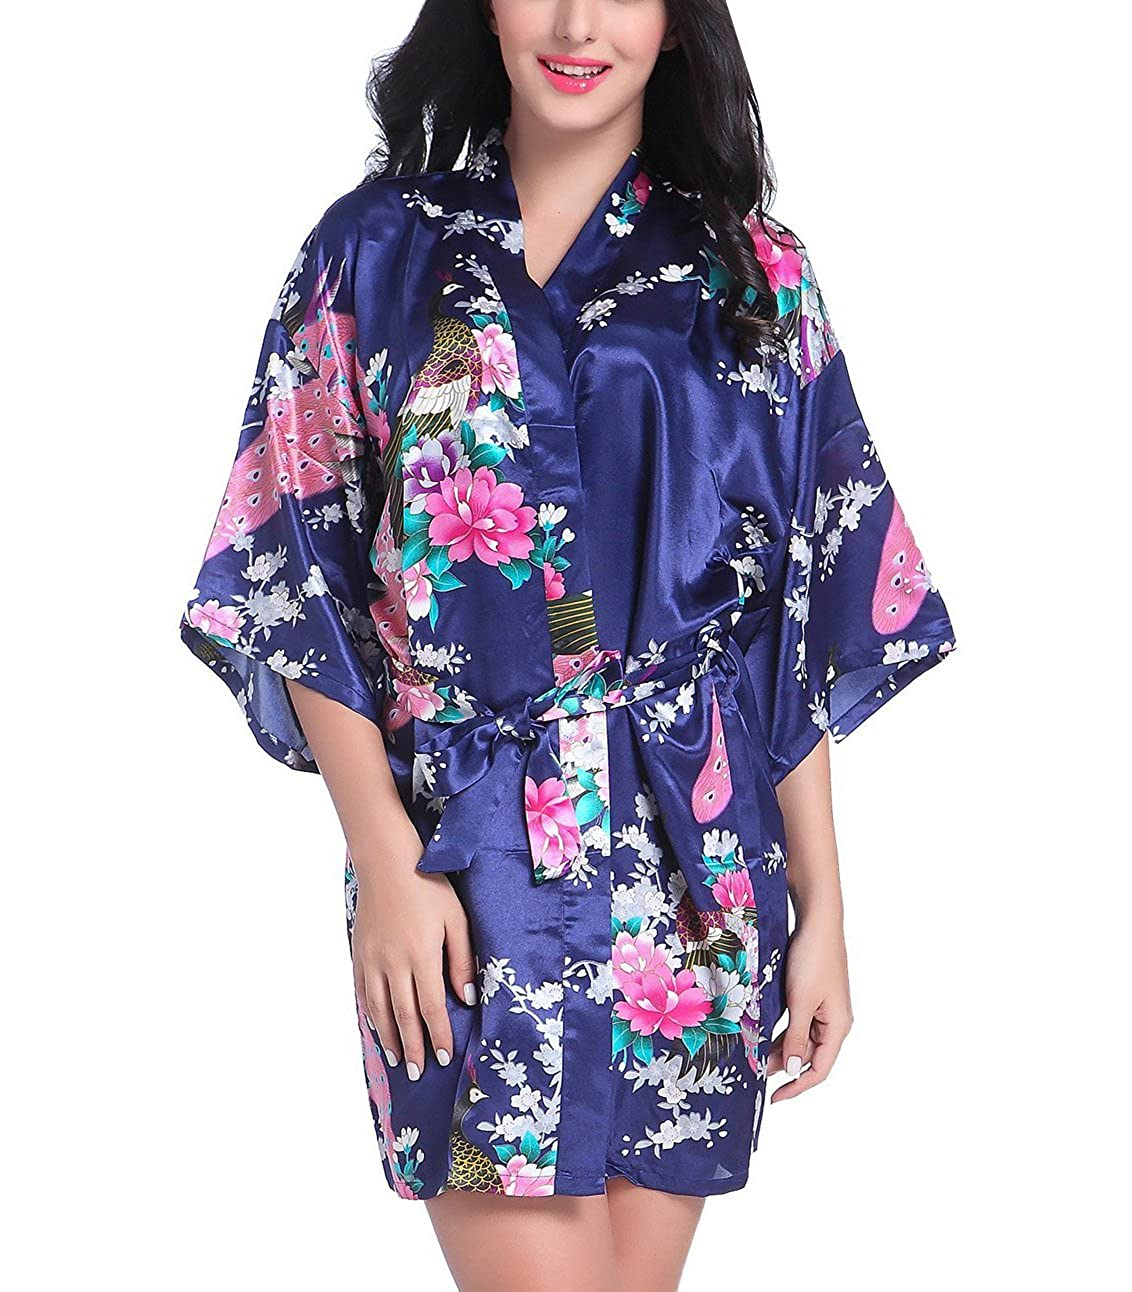 Admireme Women s Bridesmaid Robes Short Peacock Blossoms Kimono Robe  Dressing Gown Floral Robes at Amazon Women s Clothing store  b34402400